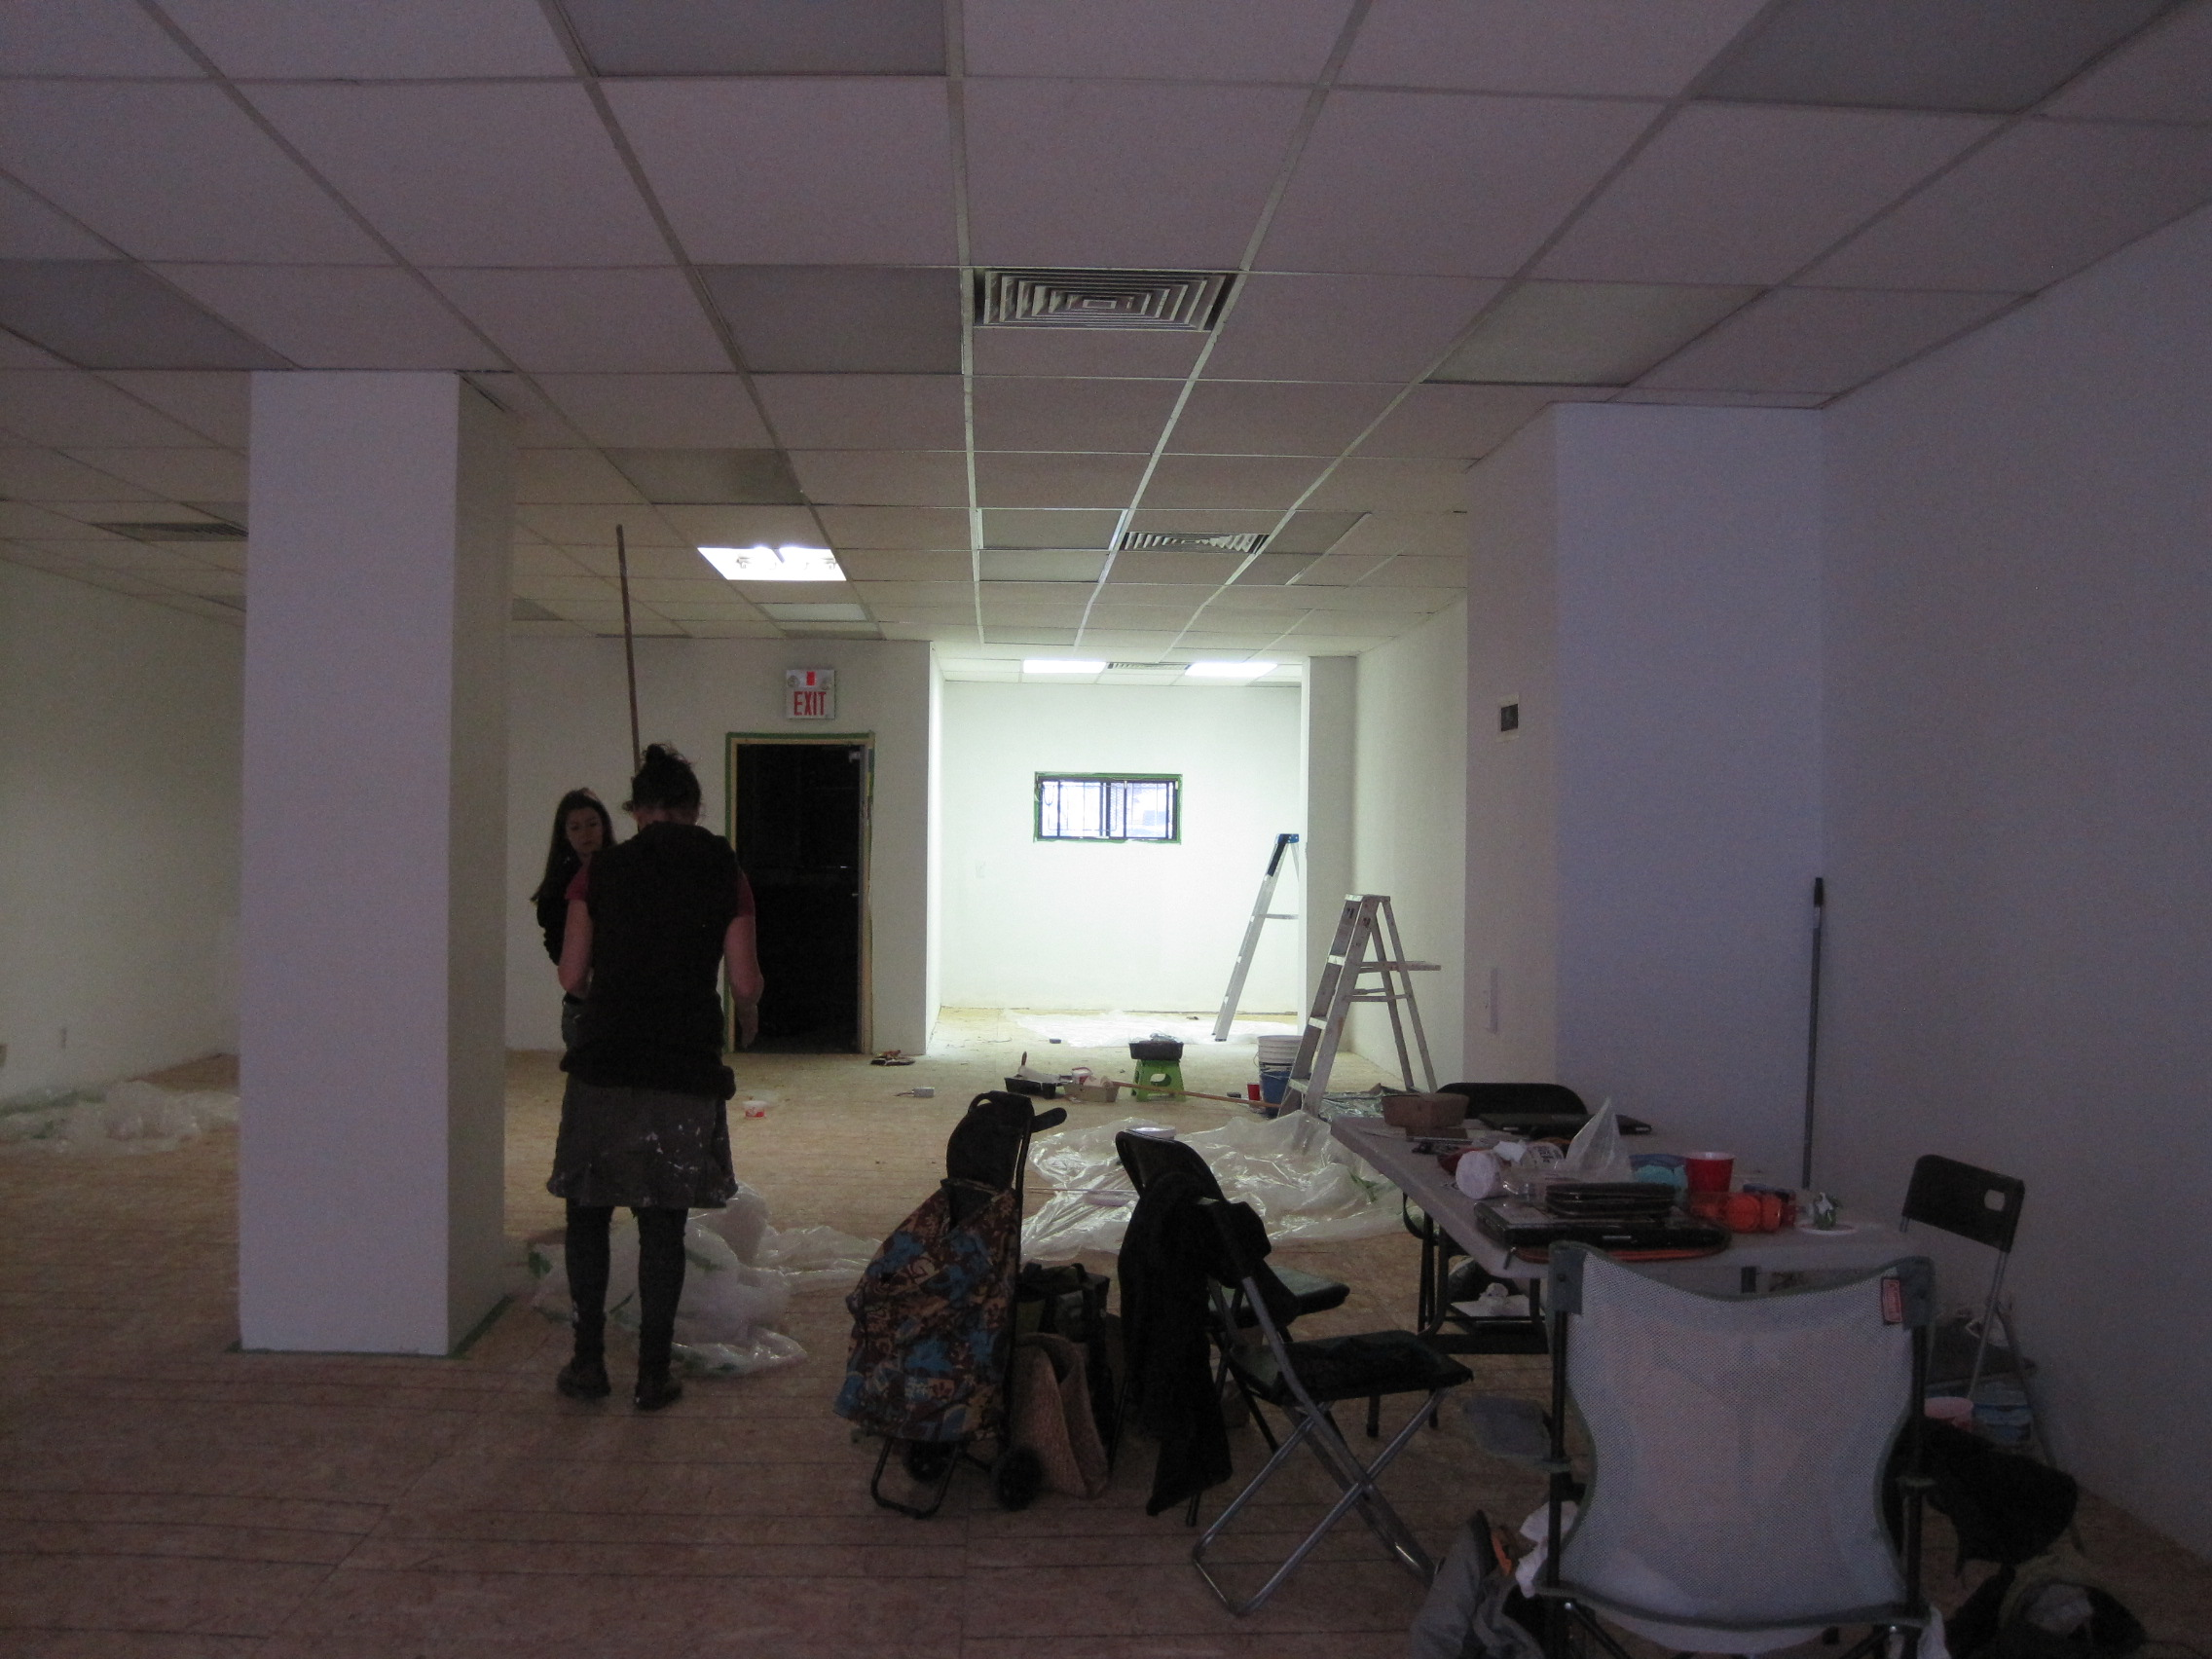 transforming the space into a pop-up gallery